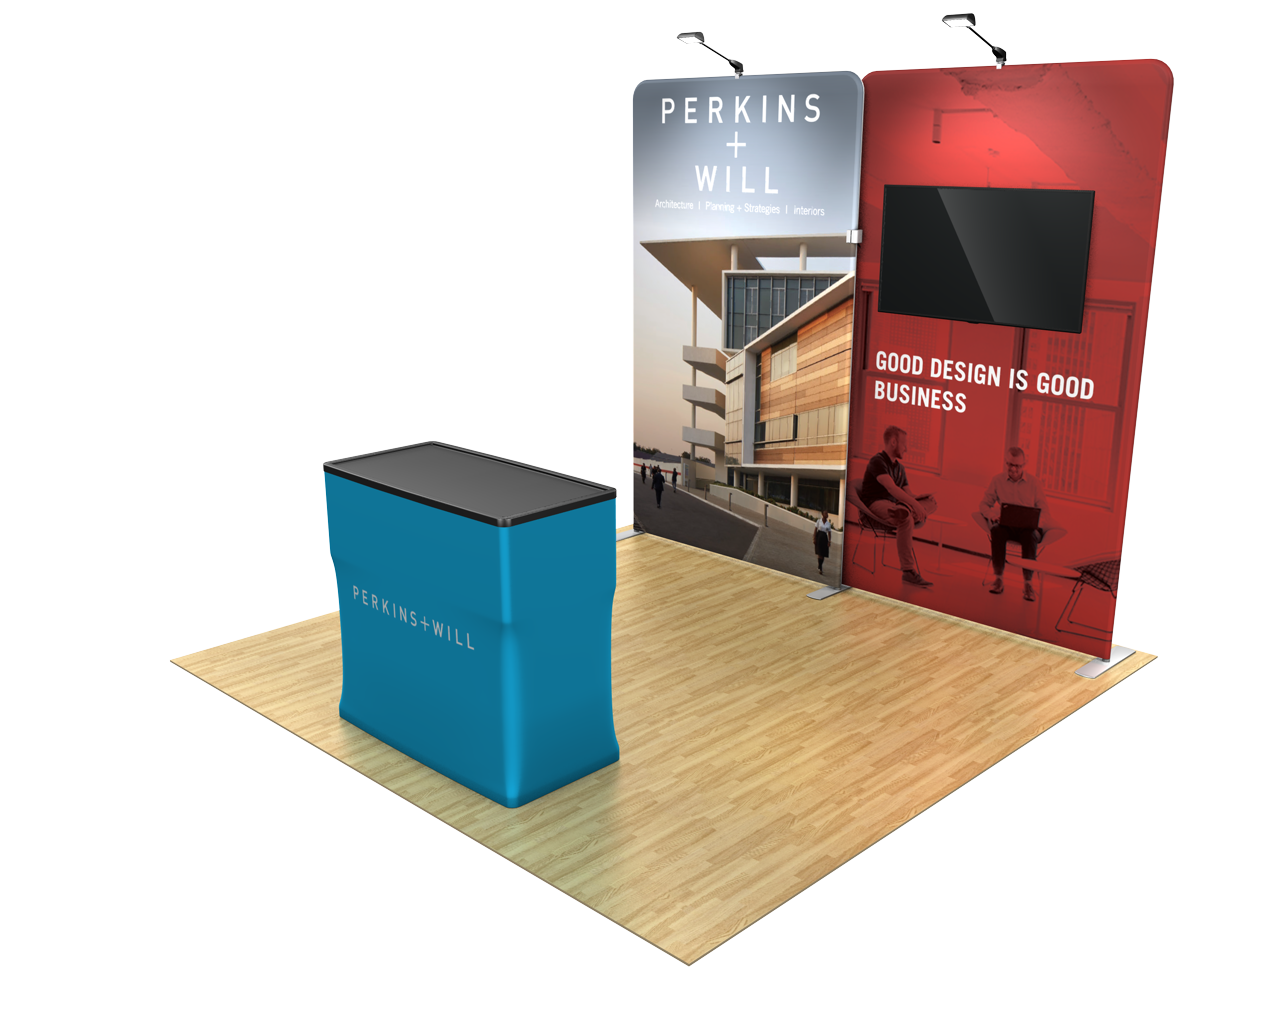 Waveline Media 10ft Trade Show Display Kit - 10.04